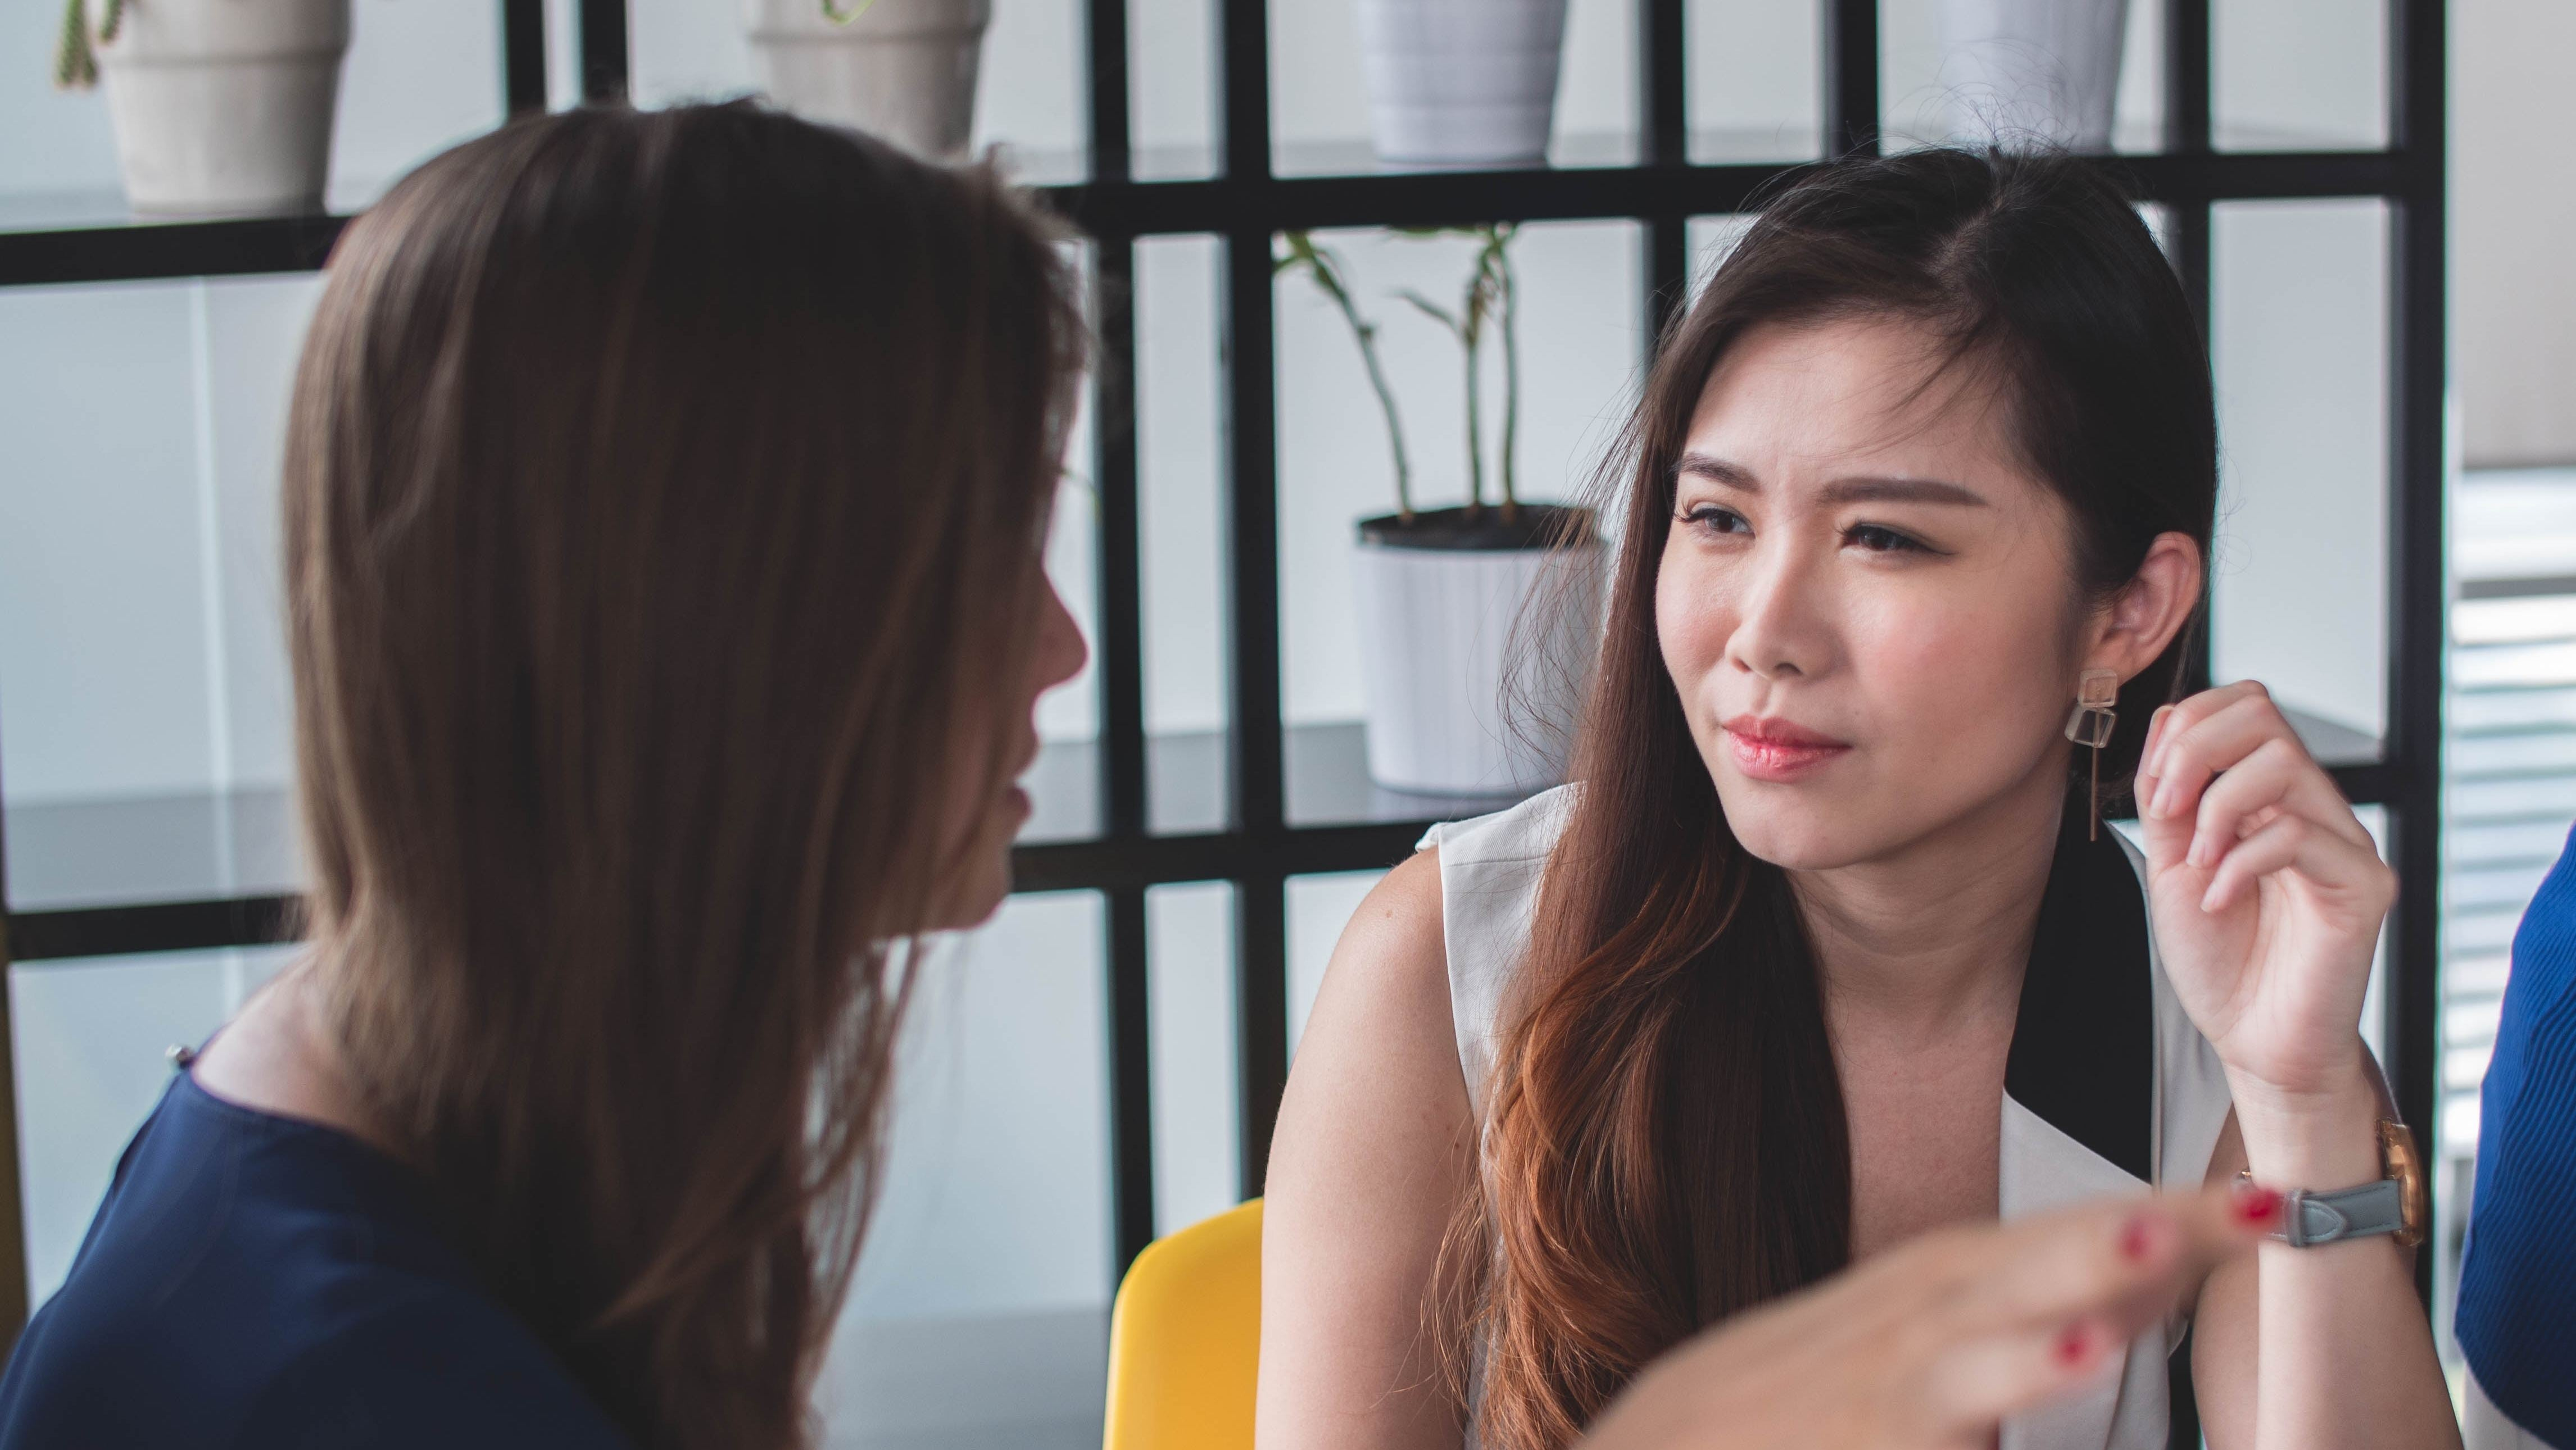 Want To Build Your Career? Ask Your Boss These Questions